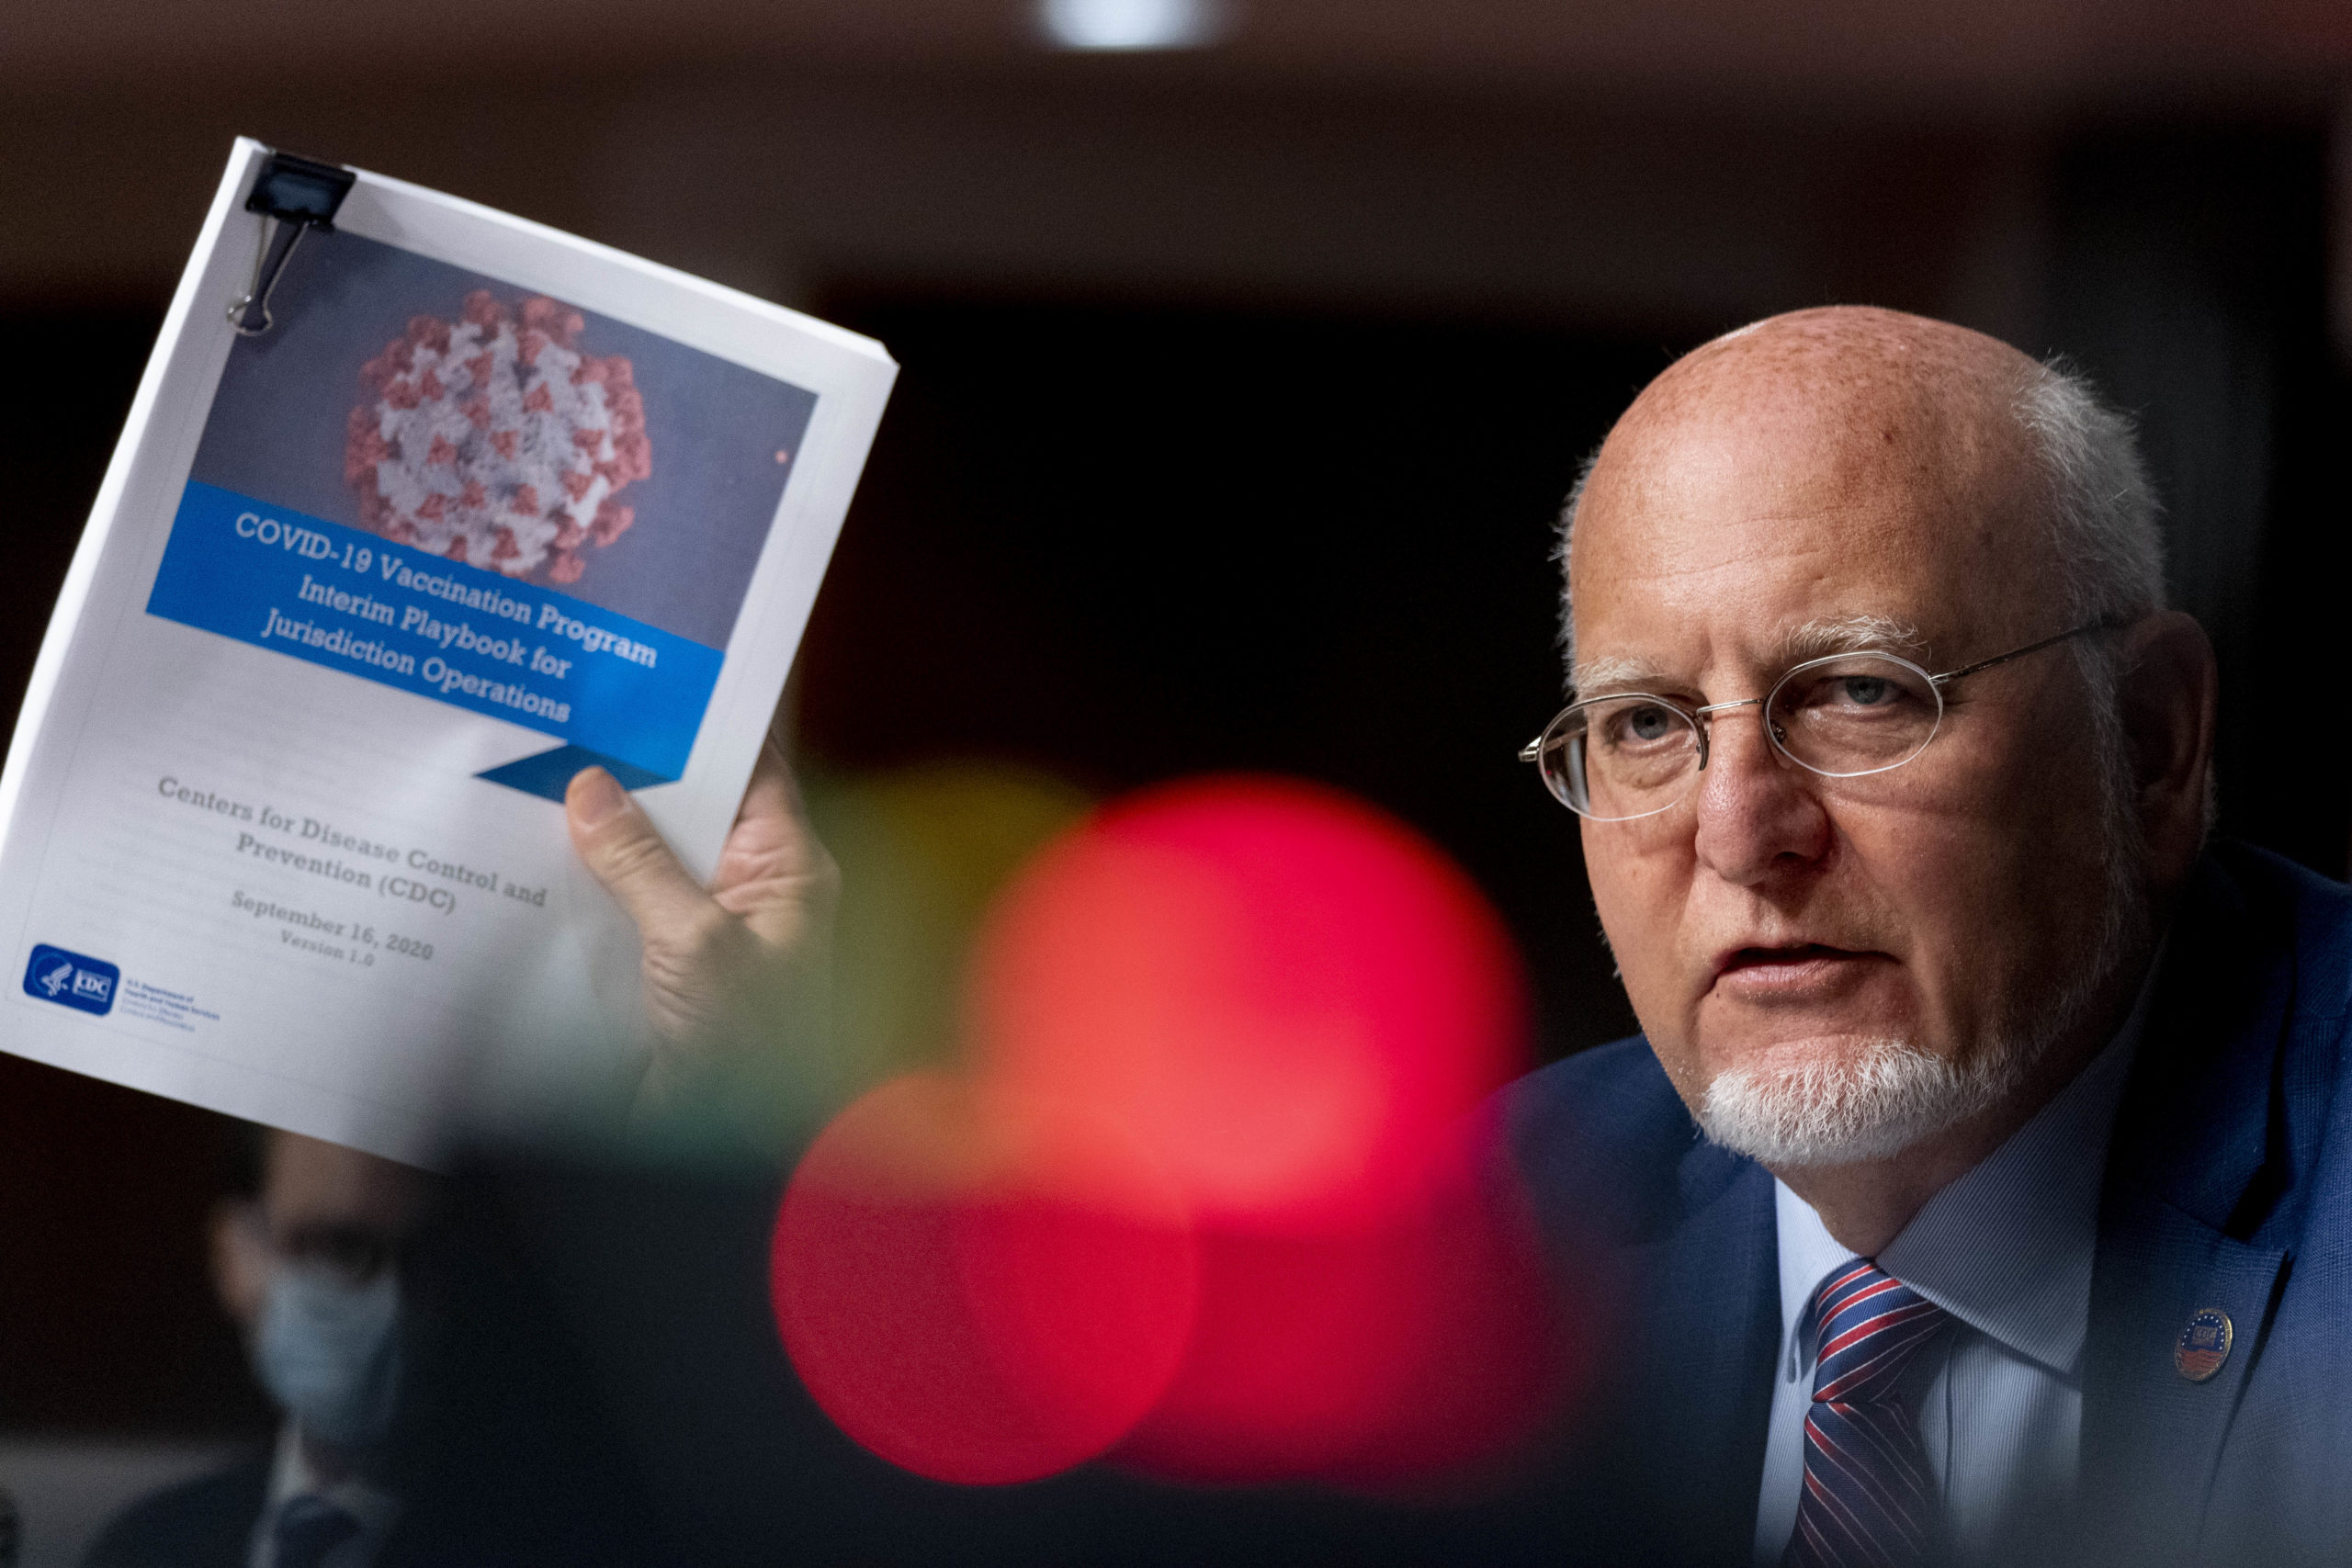 Centers for Disease Control and Prevention (CDC) Director Dr. Robert Redfield holds up a CDC document while he speaks at a hearing of the Senate Appropriations subcommittee reviewing coronavirus response efforts on September 16, 2020 in Washington, DC. (Andrew Harnik-Pool/Getty Images)